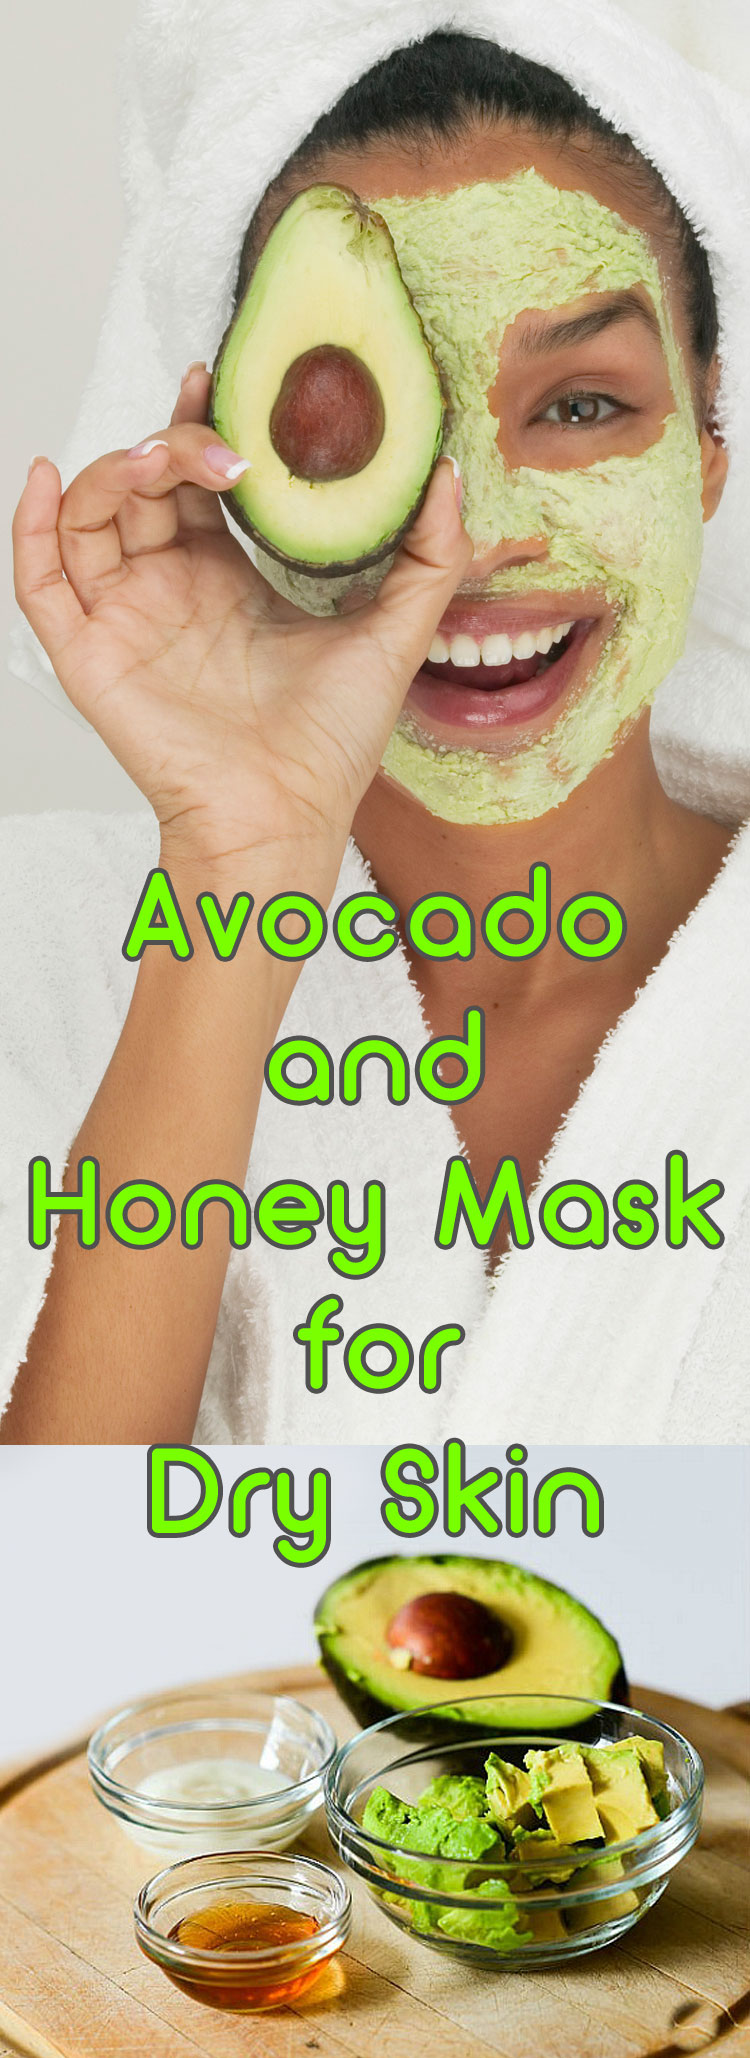 Avocado and Honey Mask for Dry Skin